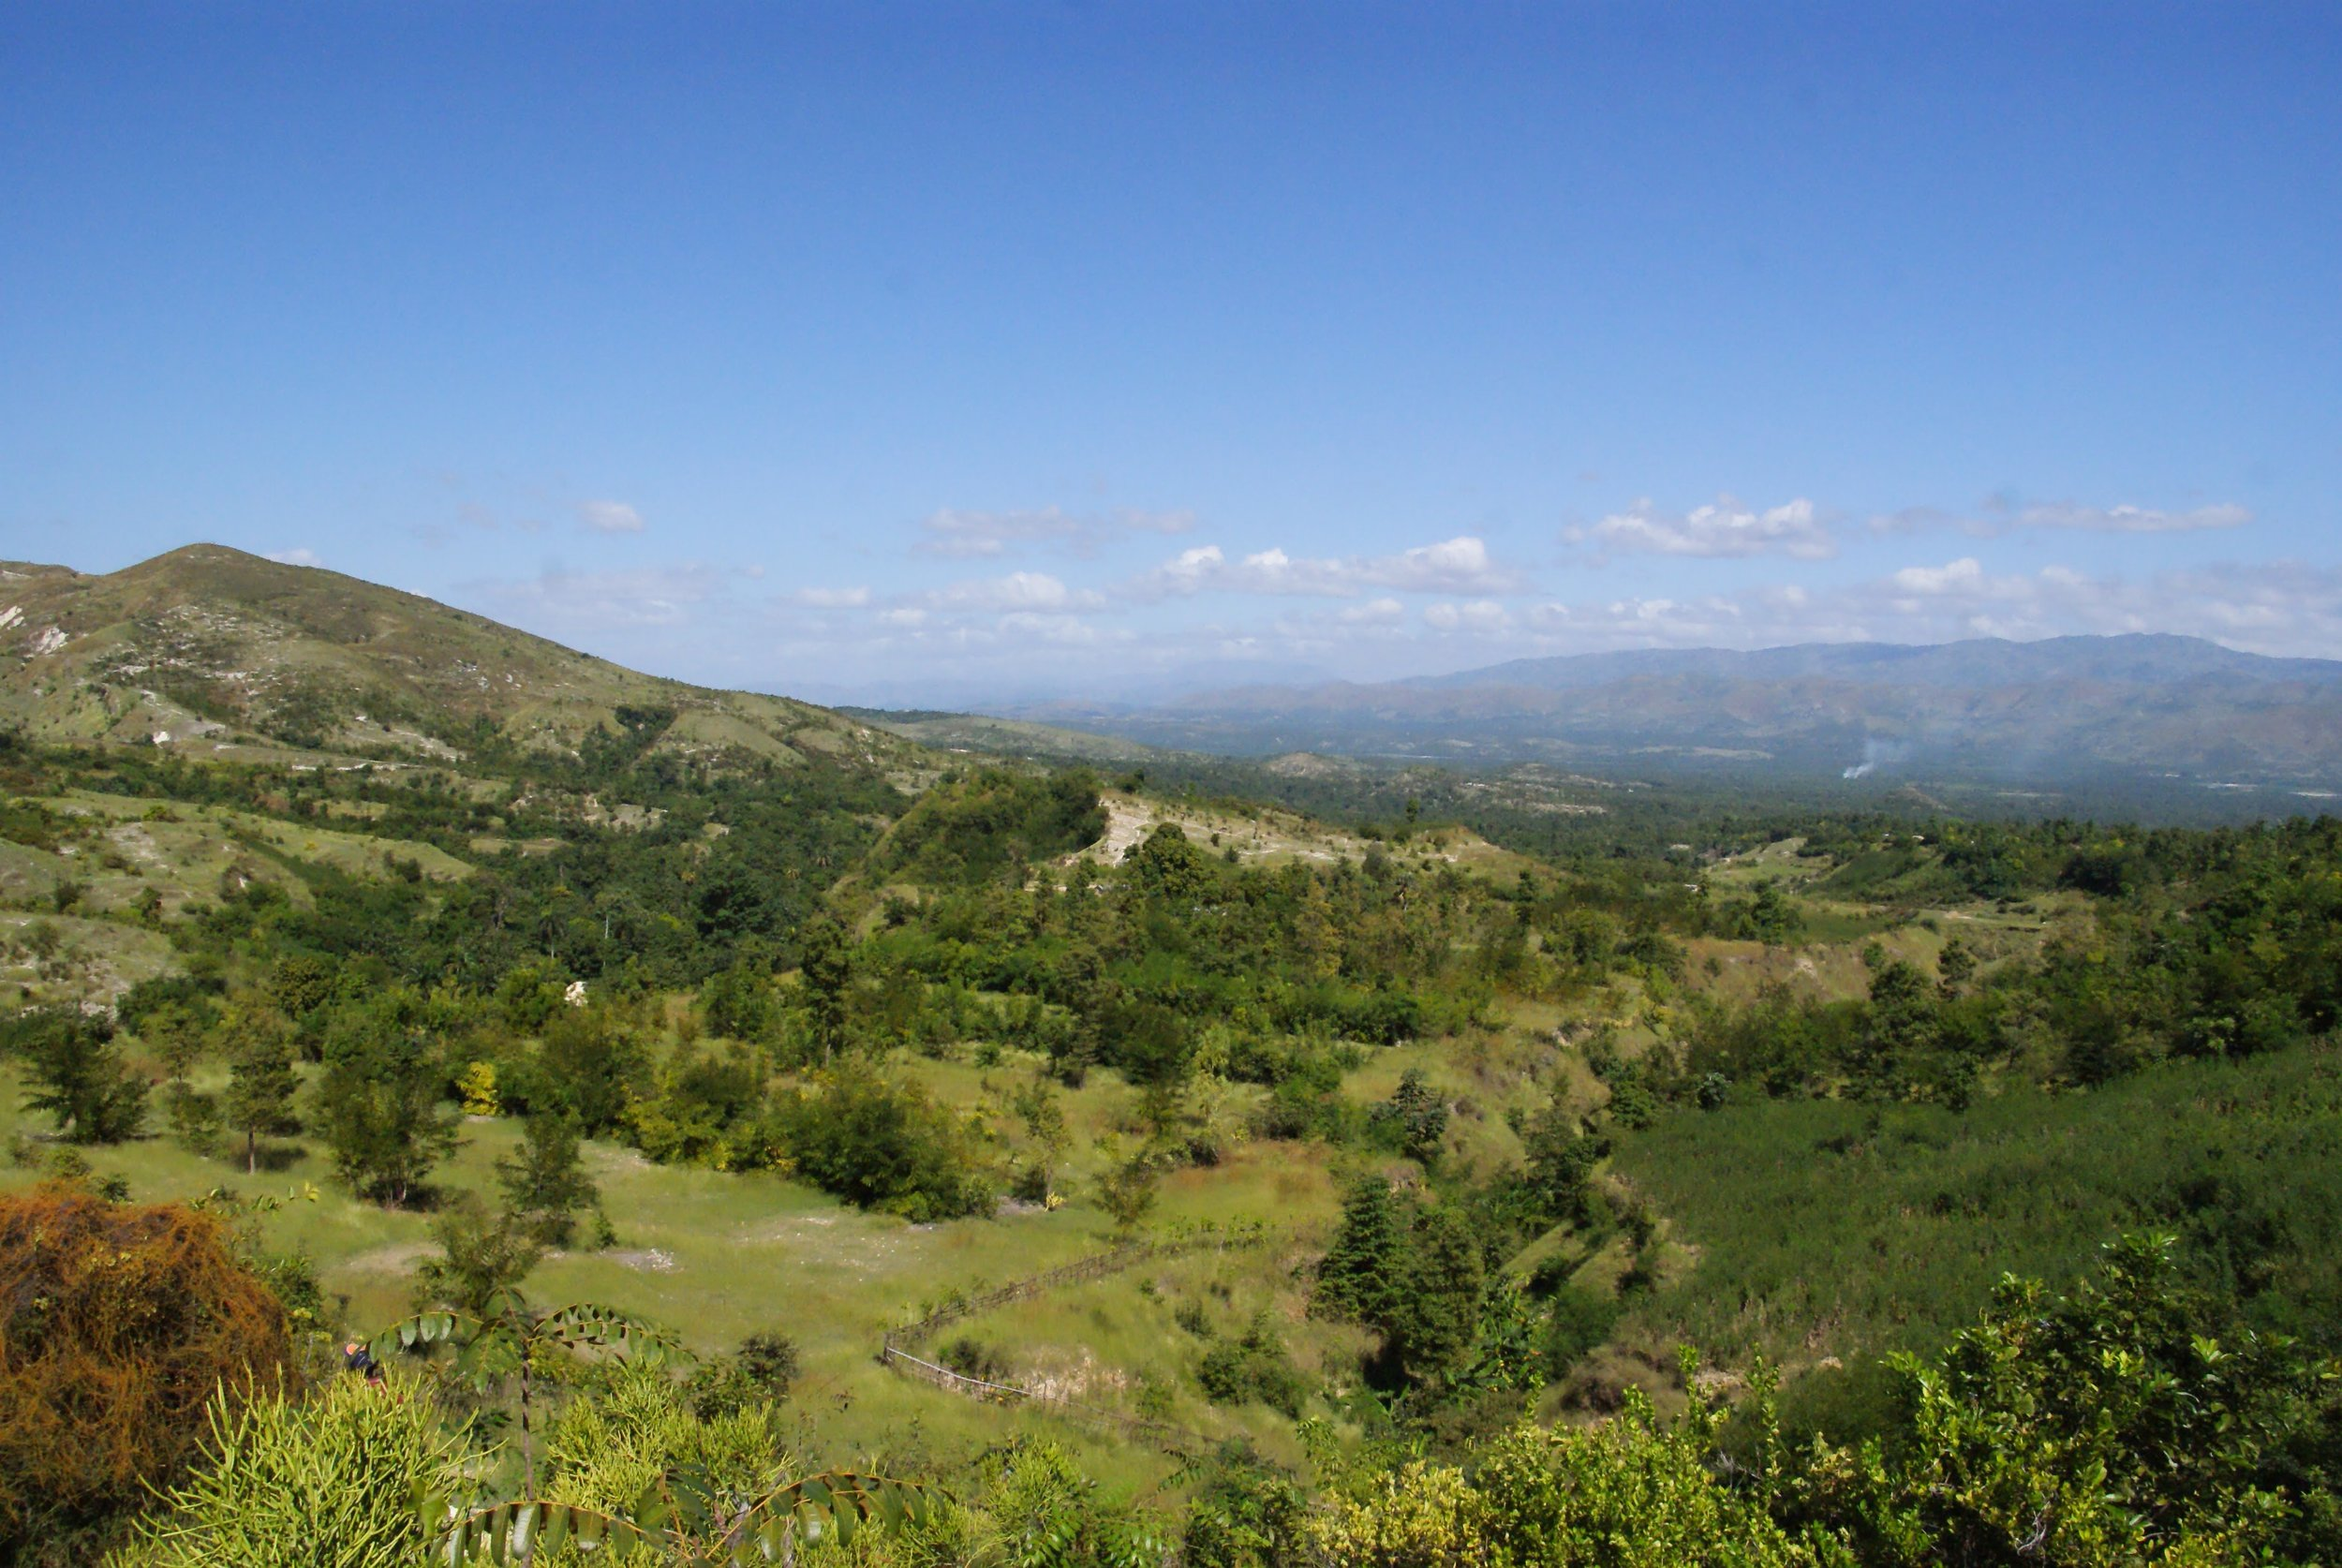 MCC has supported the reforestation work in the Artibonite Valley that is visible in the middle of this photo. Prior to reforestation, agro-forestry and micro-forestry work, the mountainside was as bare as the mountain in the upper left of the photo. Photo credit: Tina Schrag